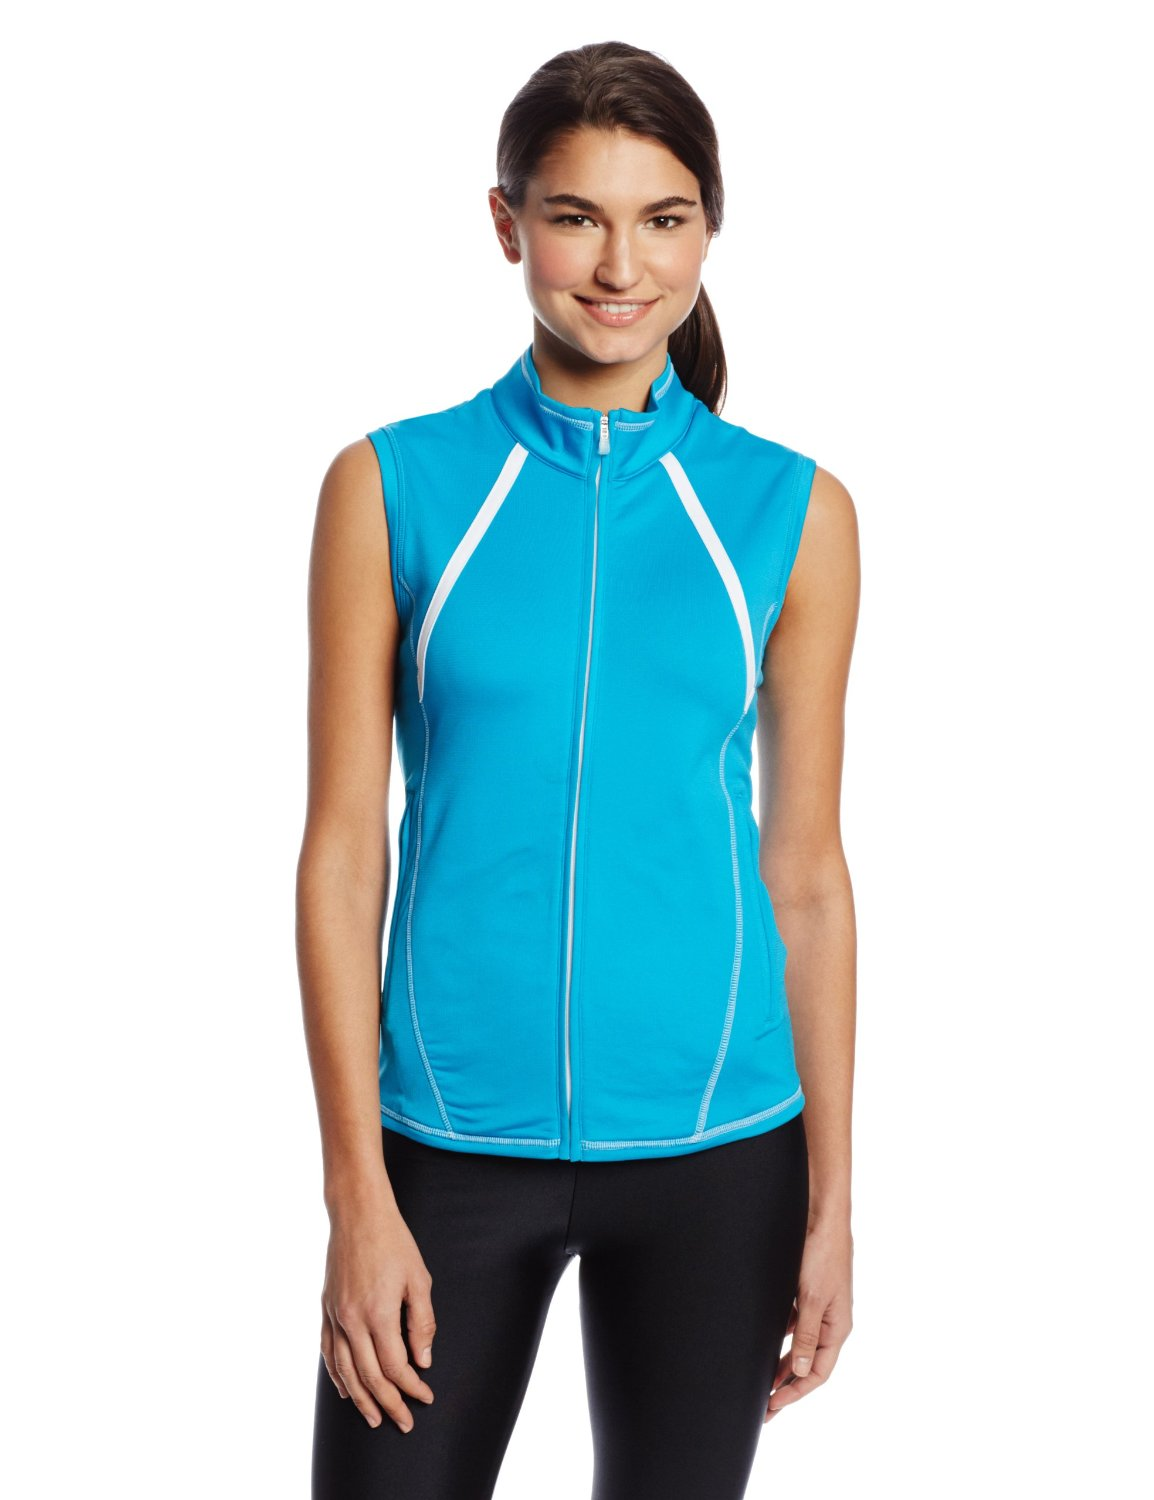 Adidas Womens Golf Vests